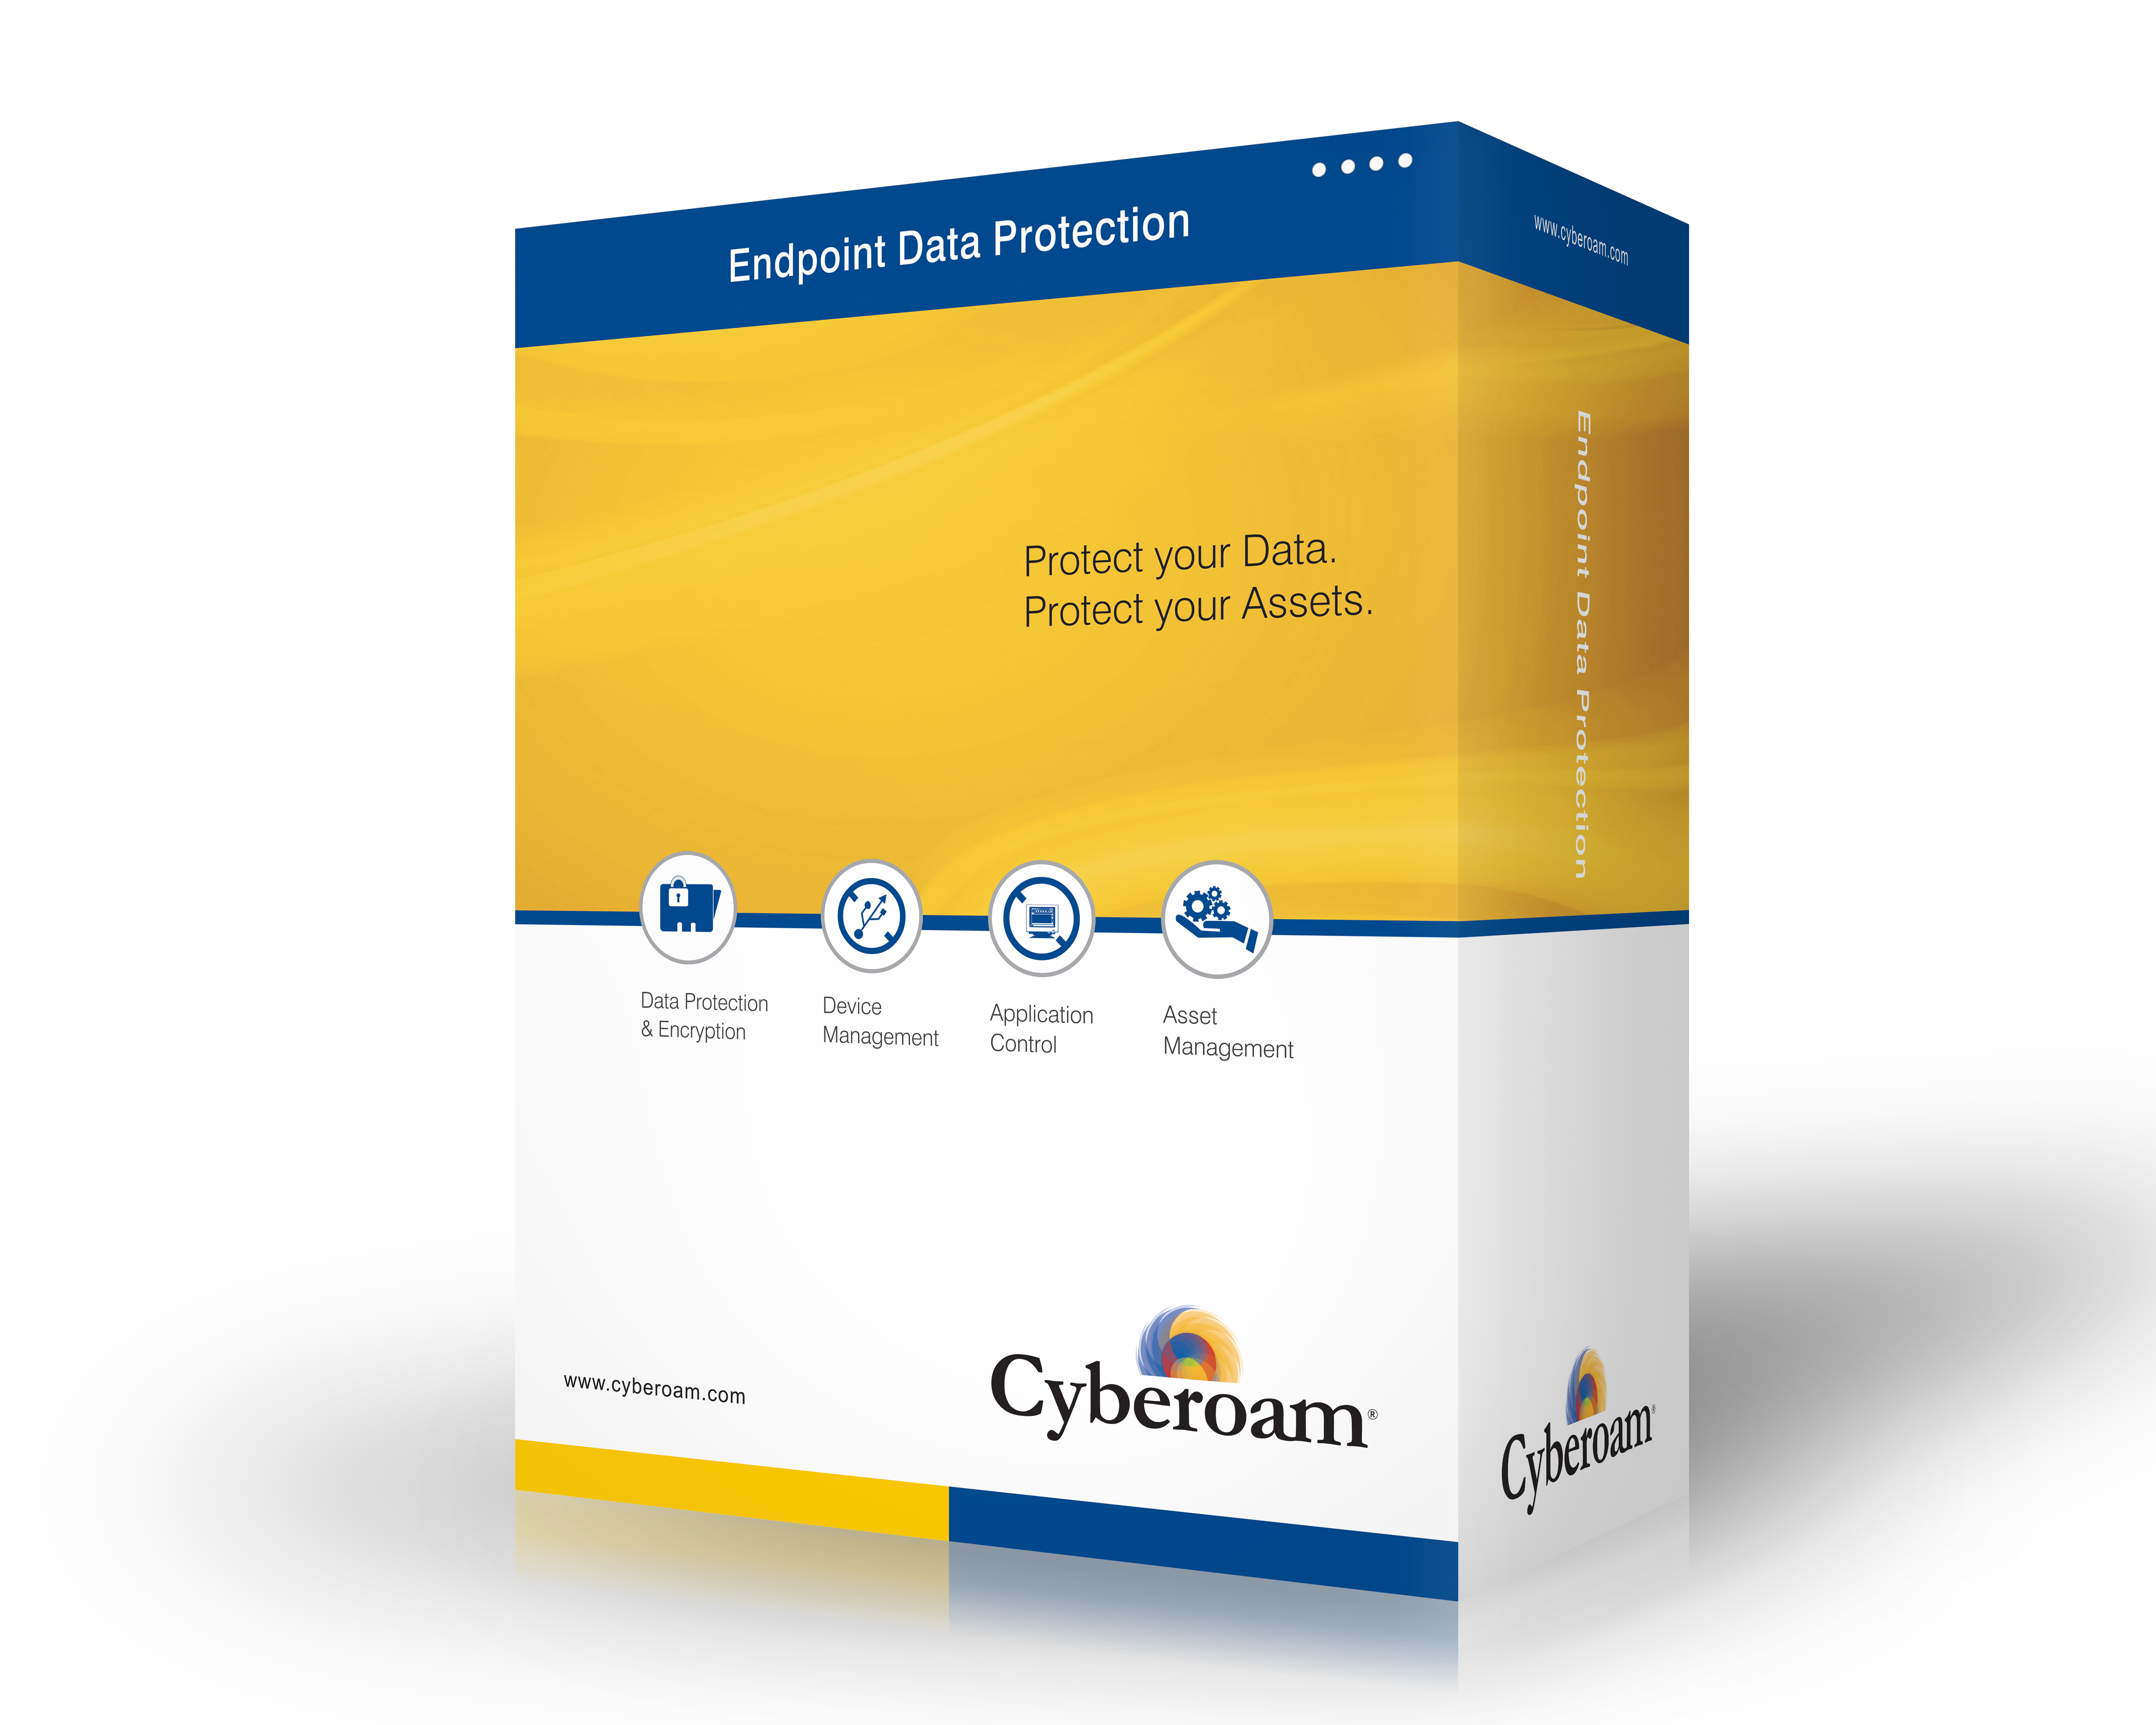 Cyberoam Launches Endpoint Data Protection Security Software Woburn